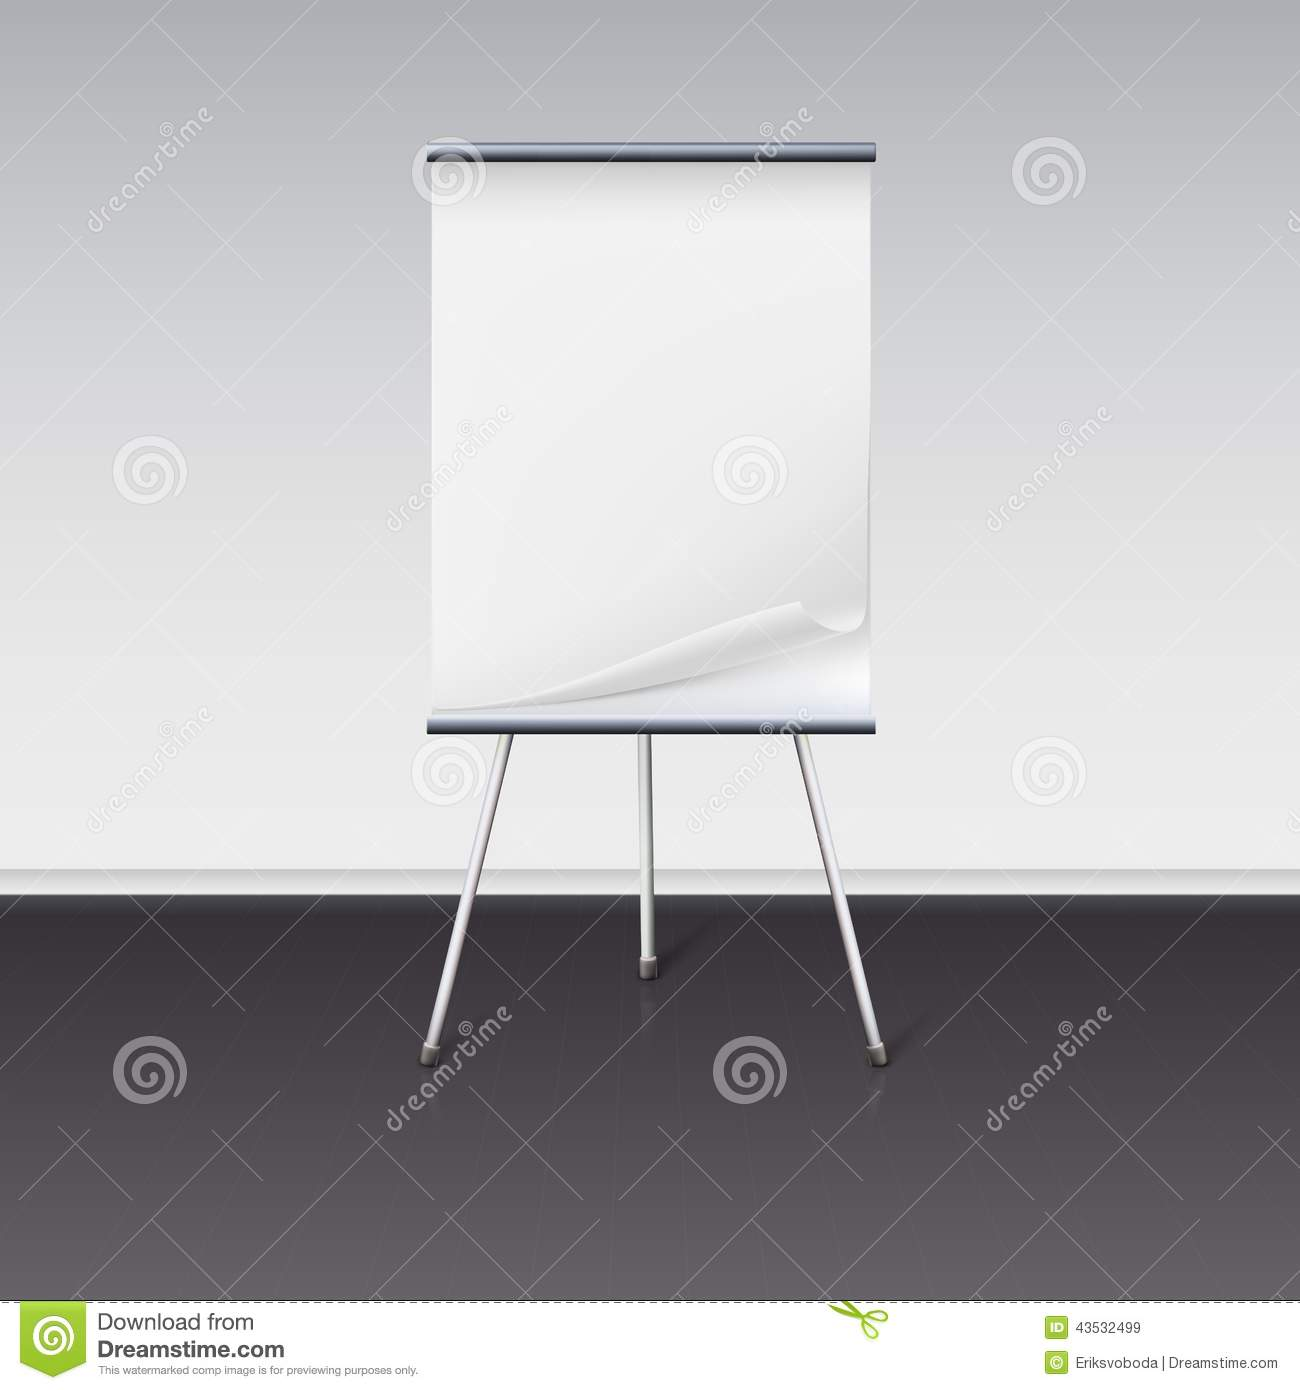 Board For Presentations With Sheet Of Paper Stand Stock Vector - Image ...